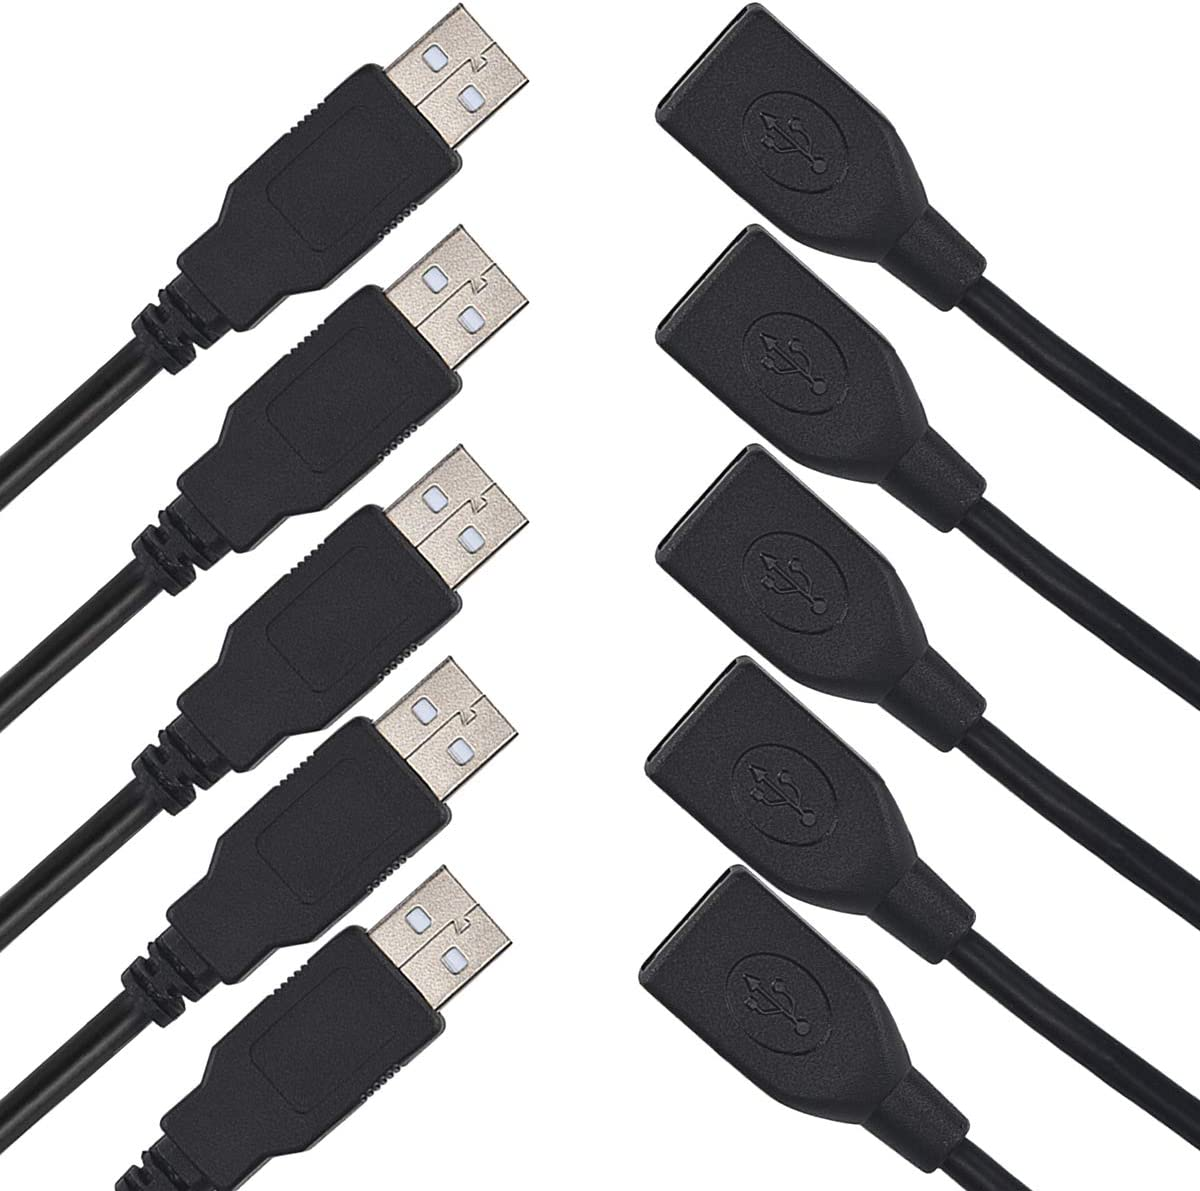 USB 2.0 Extension Cable 6.5 FT 5 Max 89% OFF Ext A to Male Female Pack Low price